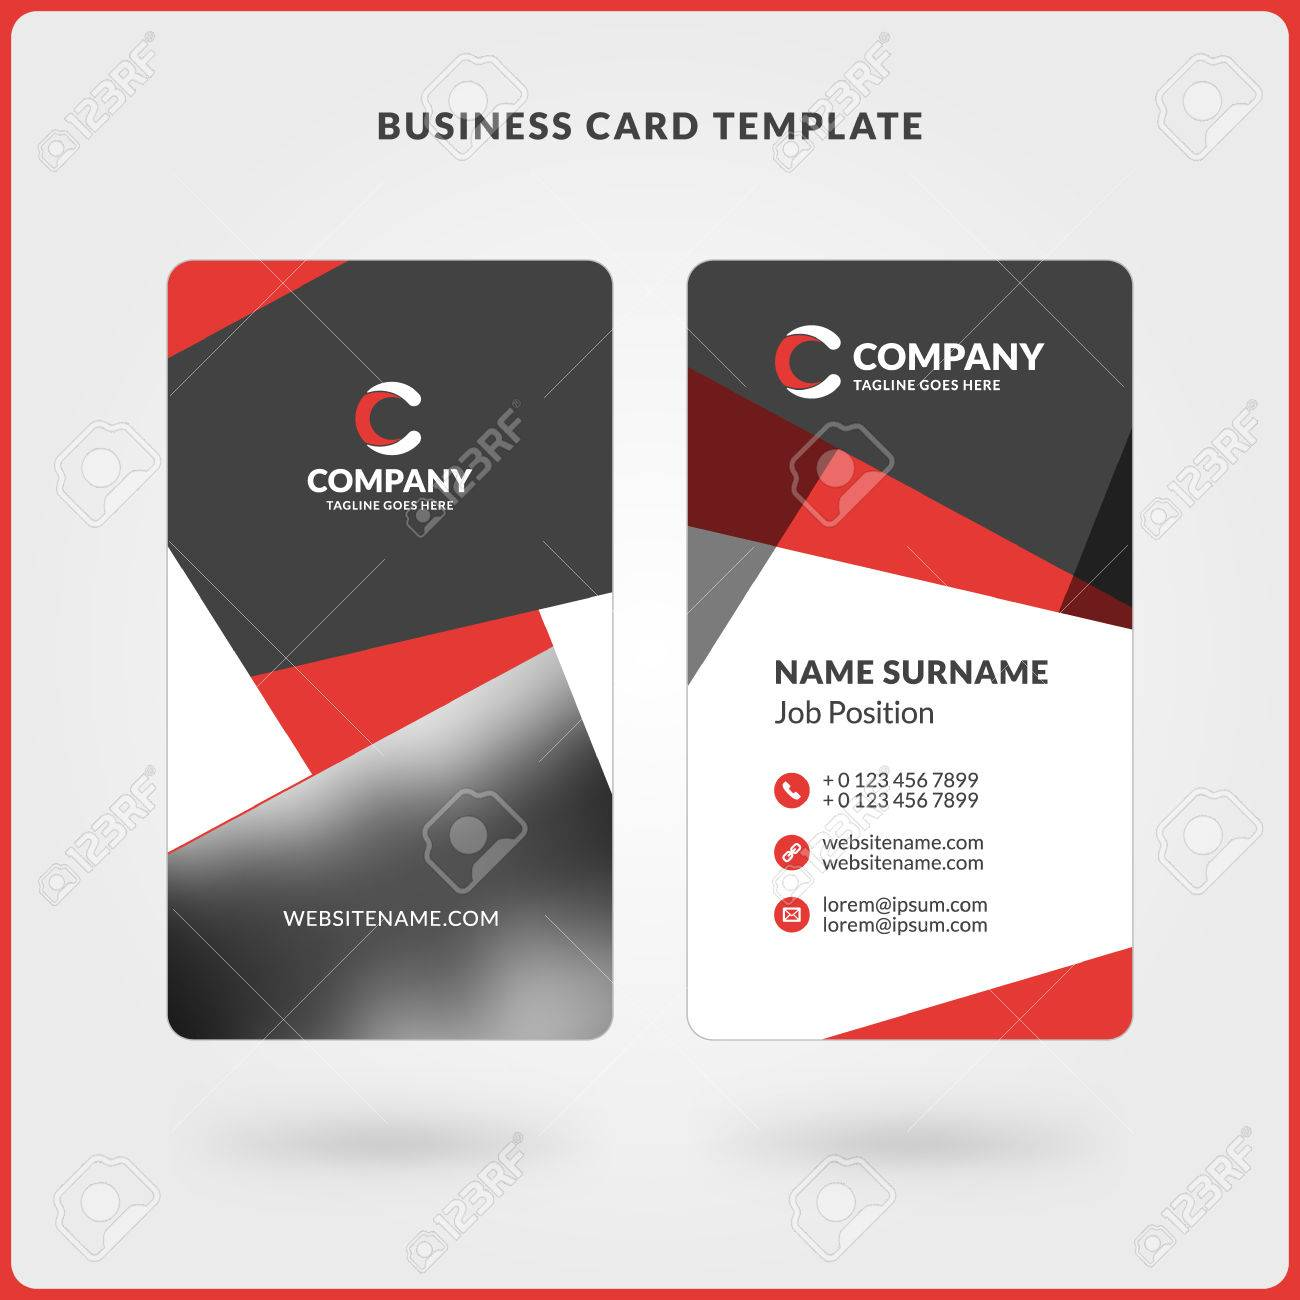 vertical double sided business card template red and black colors